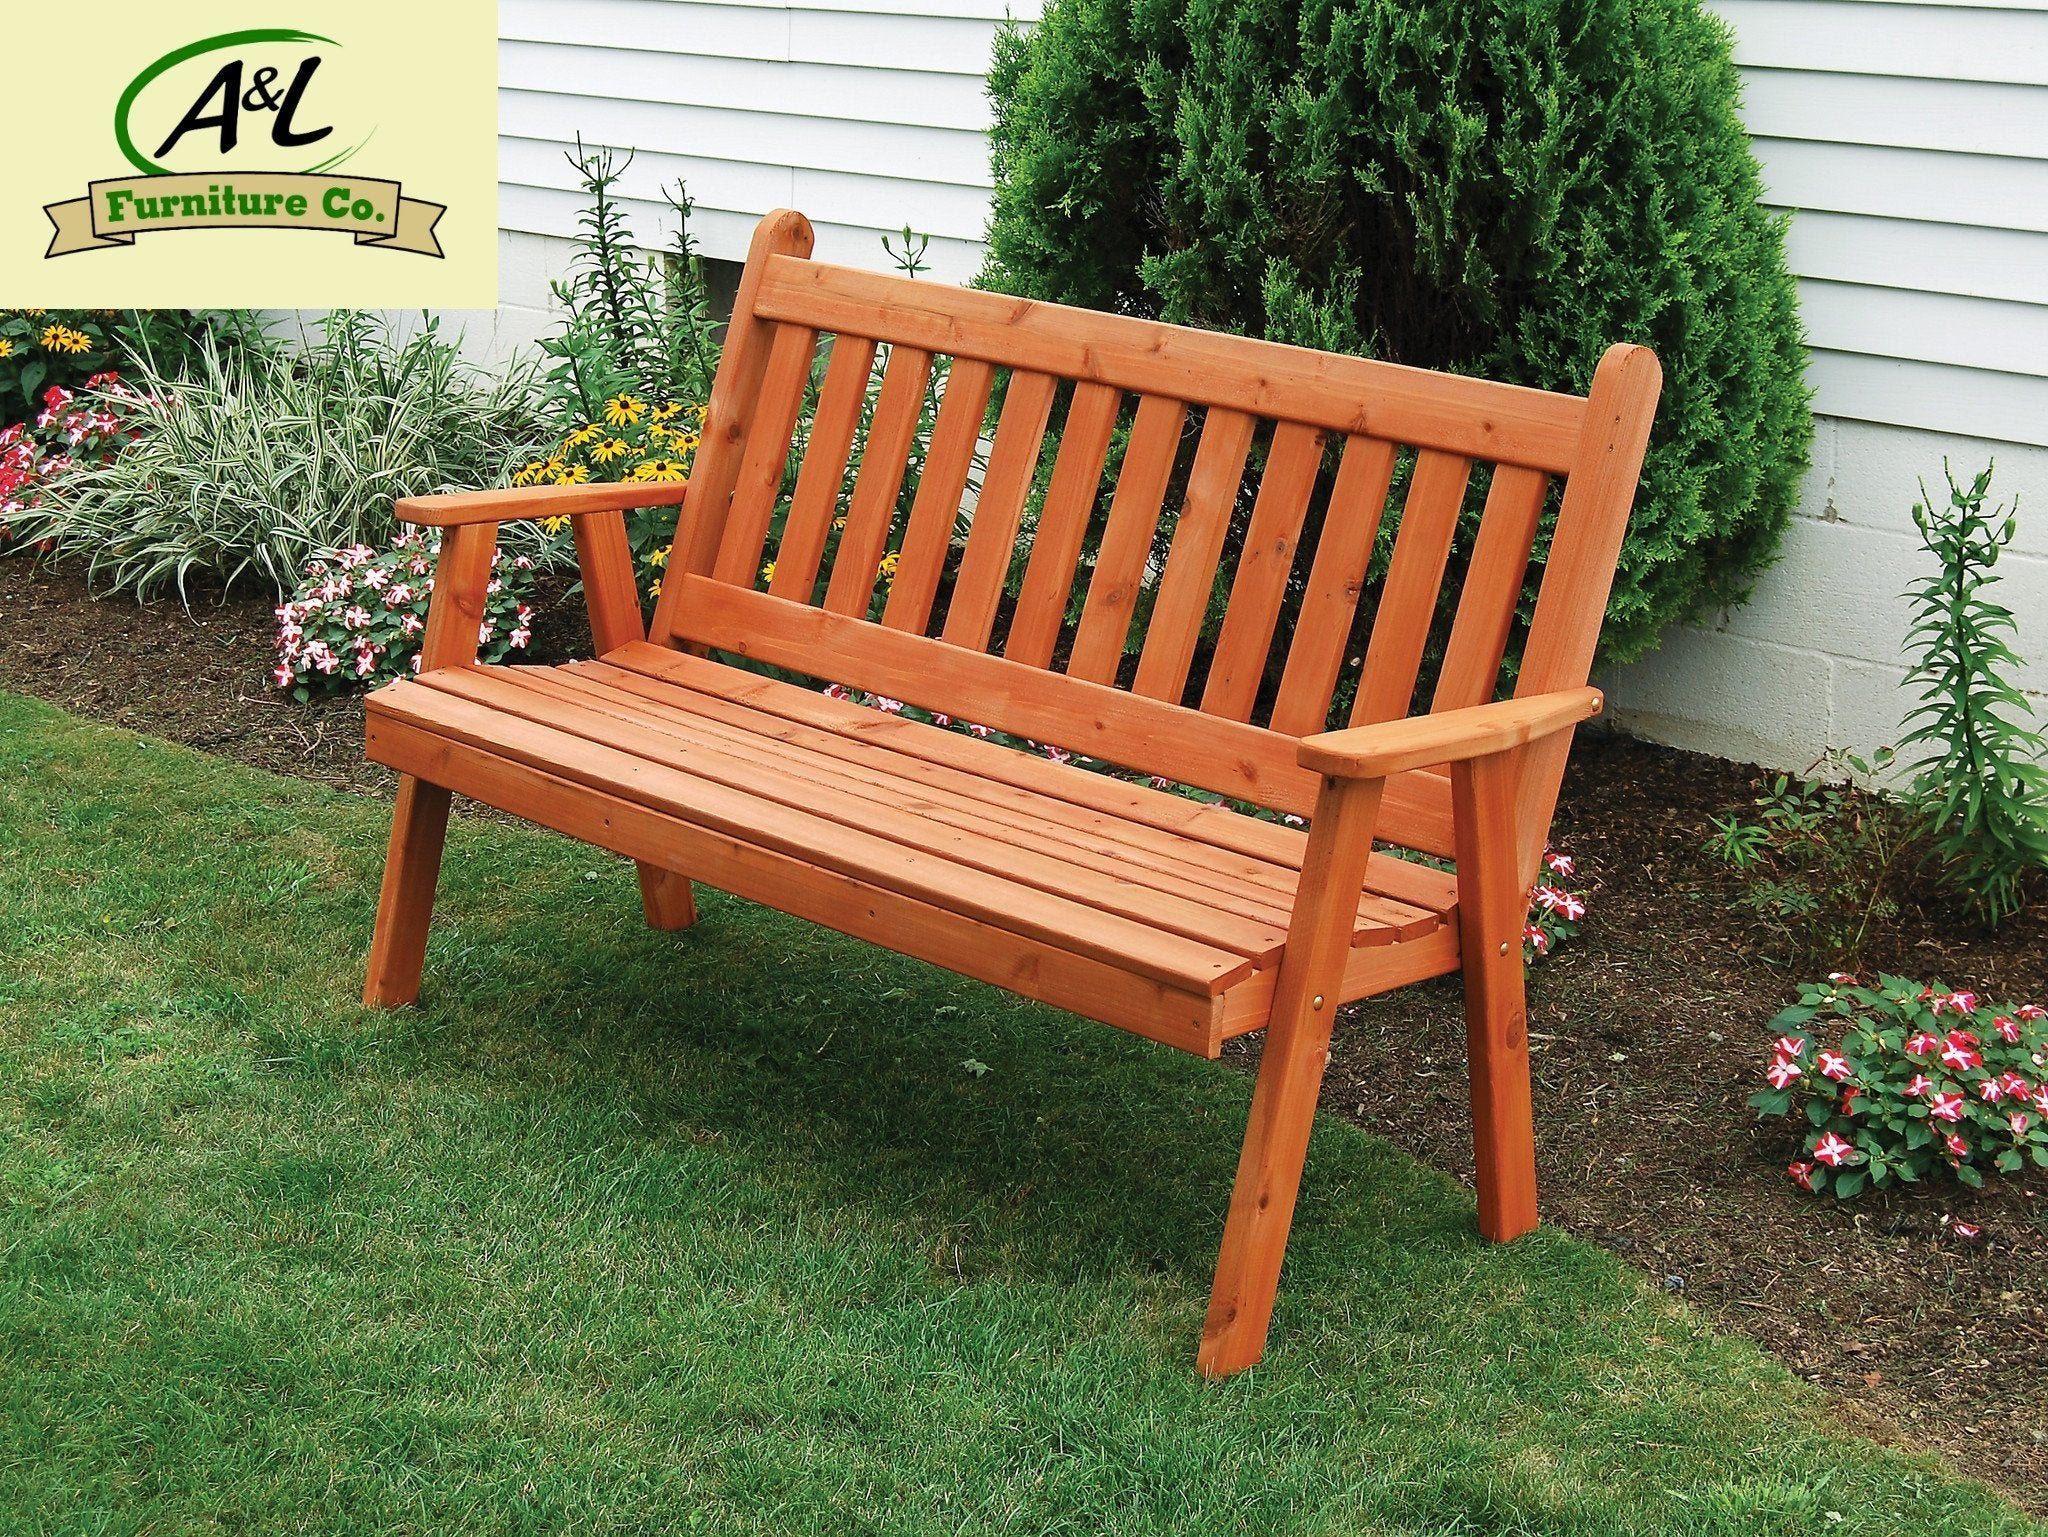 A & L Furniture Western Red Cedar Traditional English Garden Bench Garden Benches 4ft / Unfinished